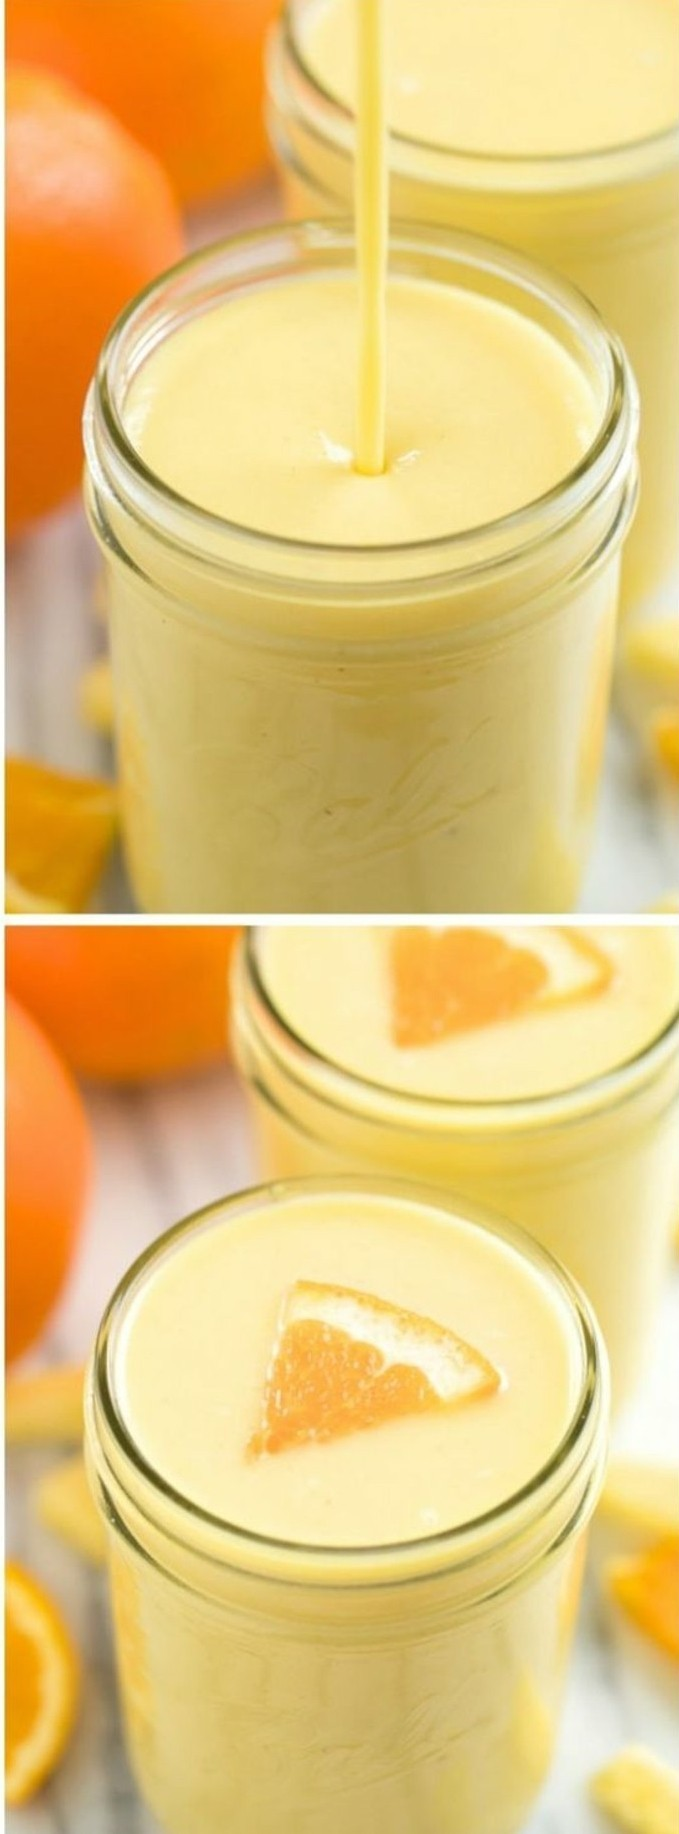 recette-de-smoothie-simple-a-realiser-smoothie-aux-oranges